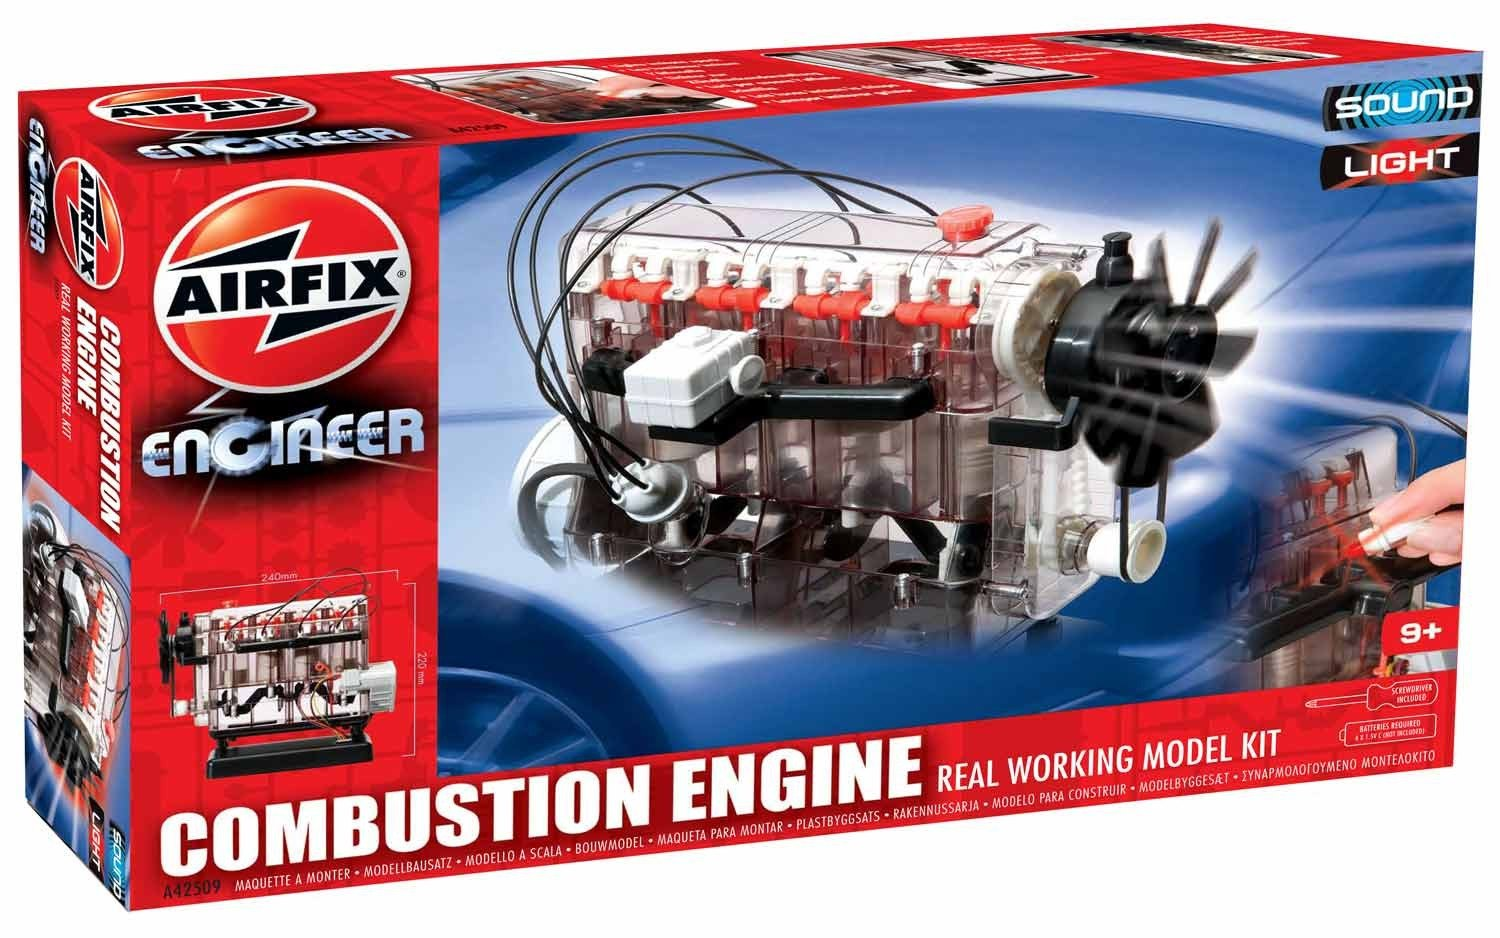 Airfix A42509 Engineer Internal Combustion Engine Educational Diagram Of A Show How Works Construction Kit Toys Games